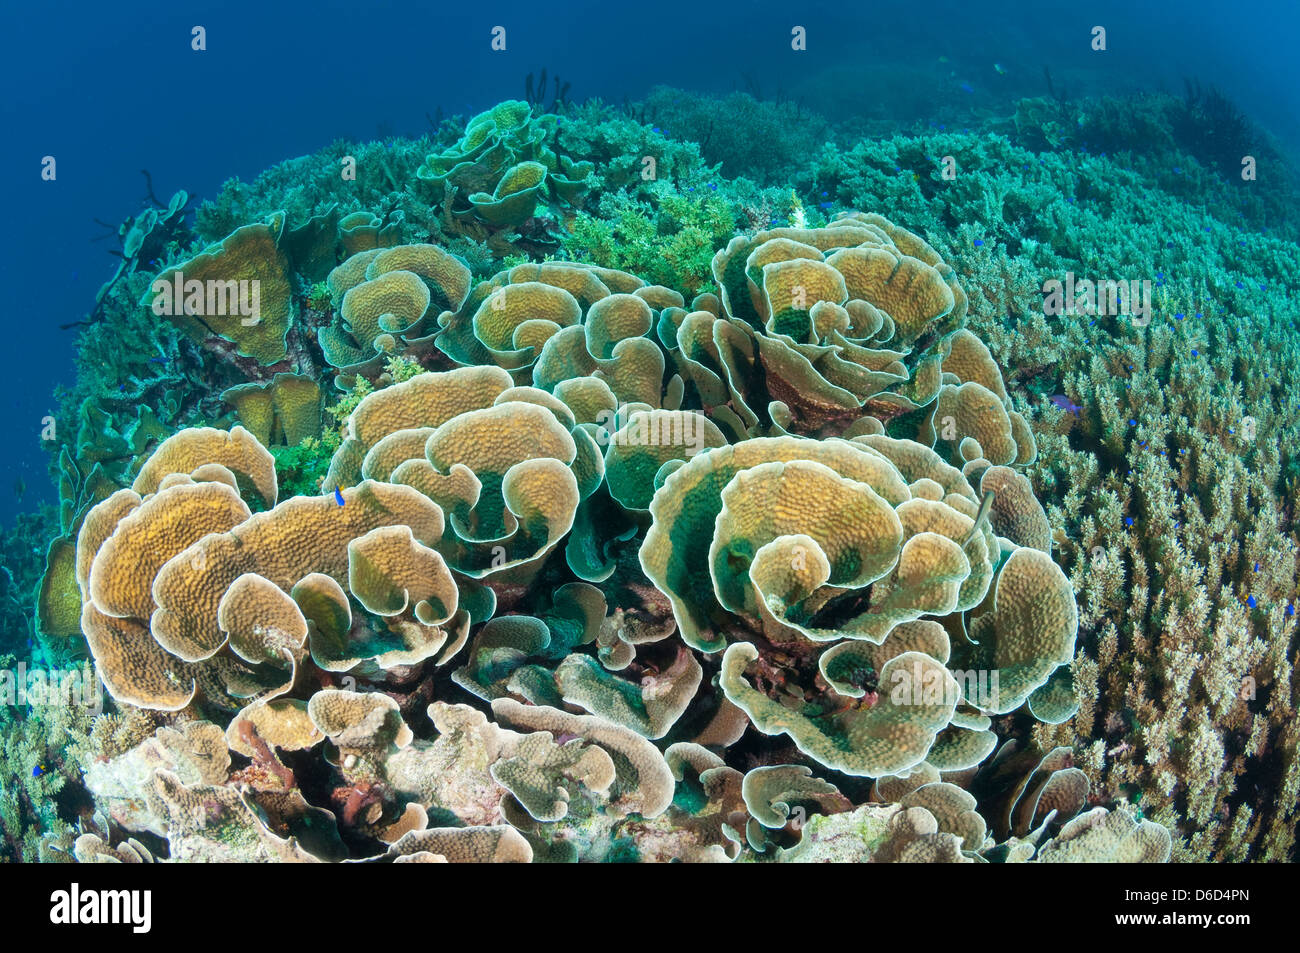 A large patch of coral at the top of an underwater seamount. - Stock Image